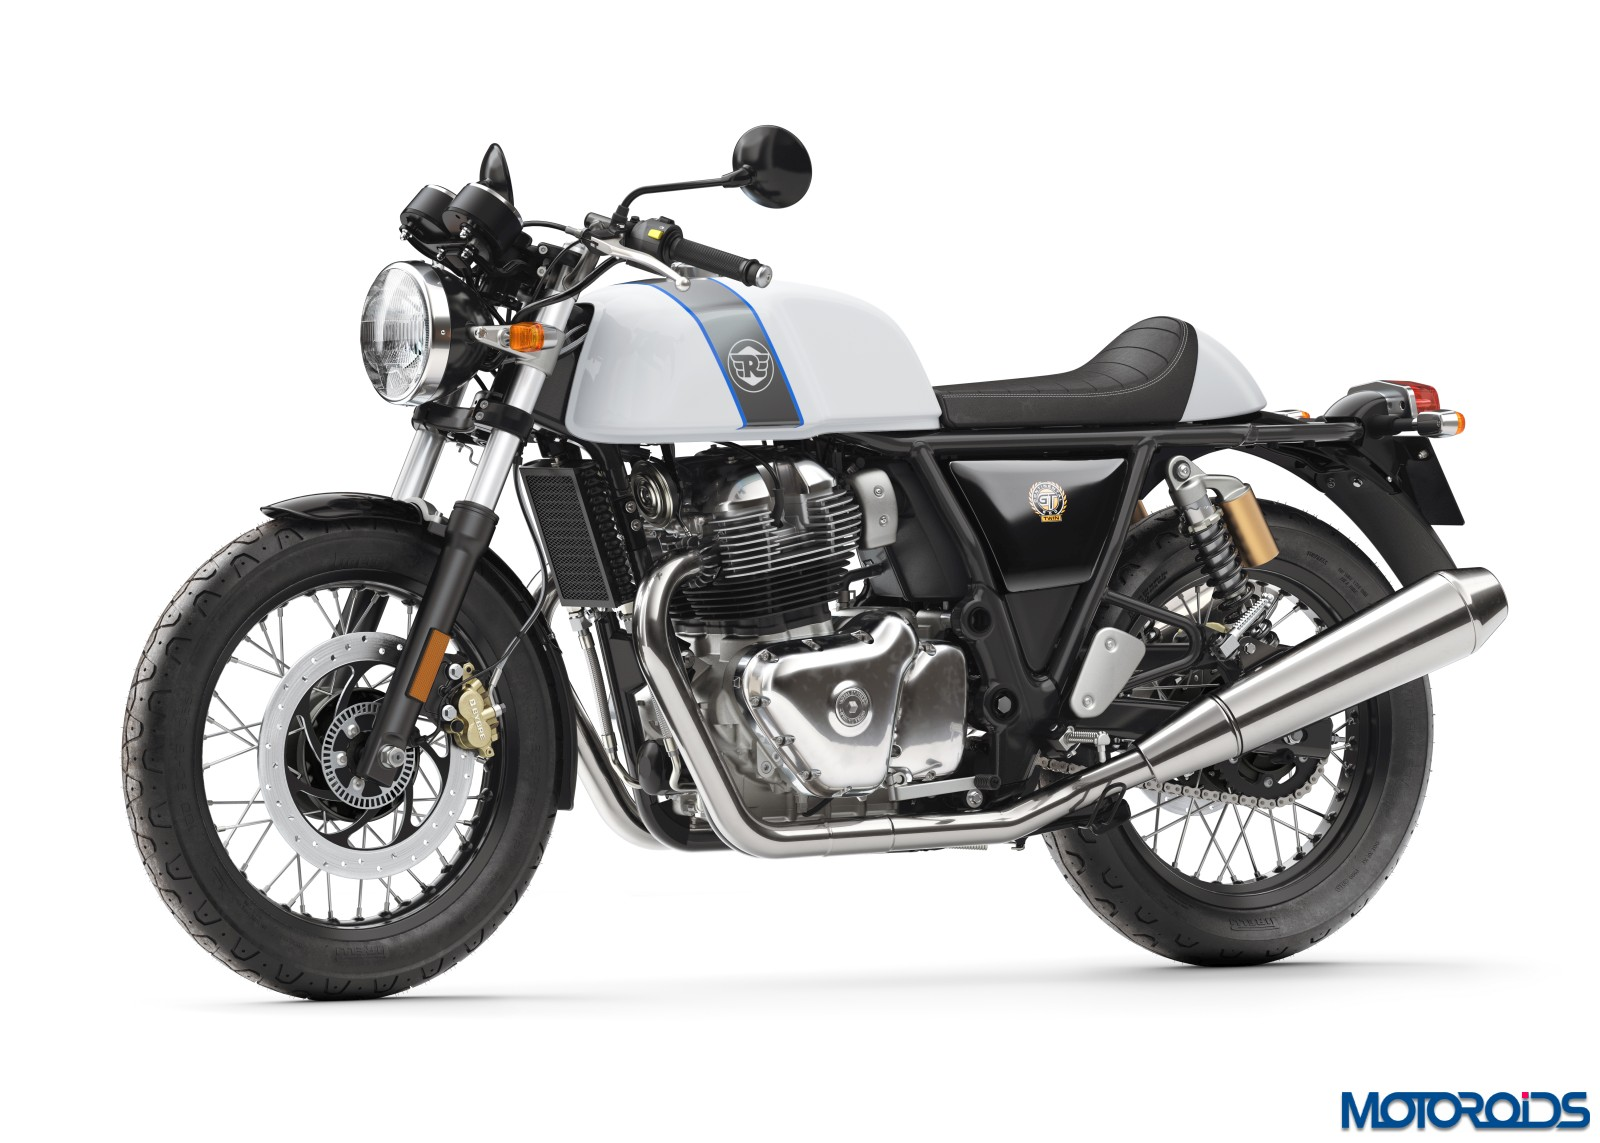 new 2018 royal enfield continental gt 650 images tech specs expected price and india launch. Black Bedroom Furniture Sets. Home Design Ideas